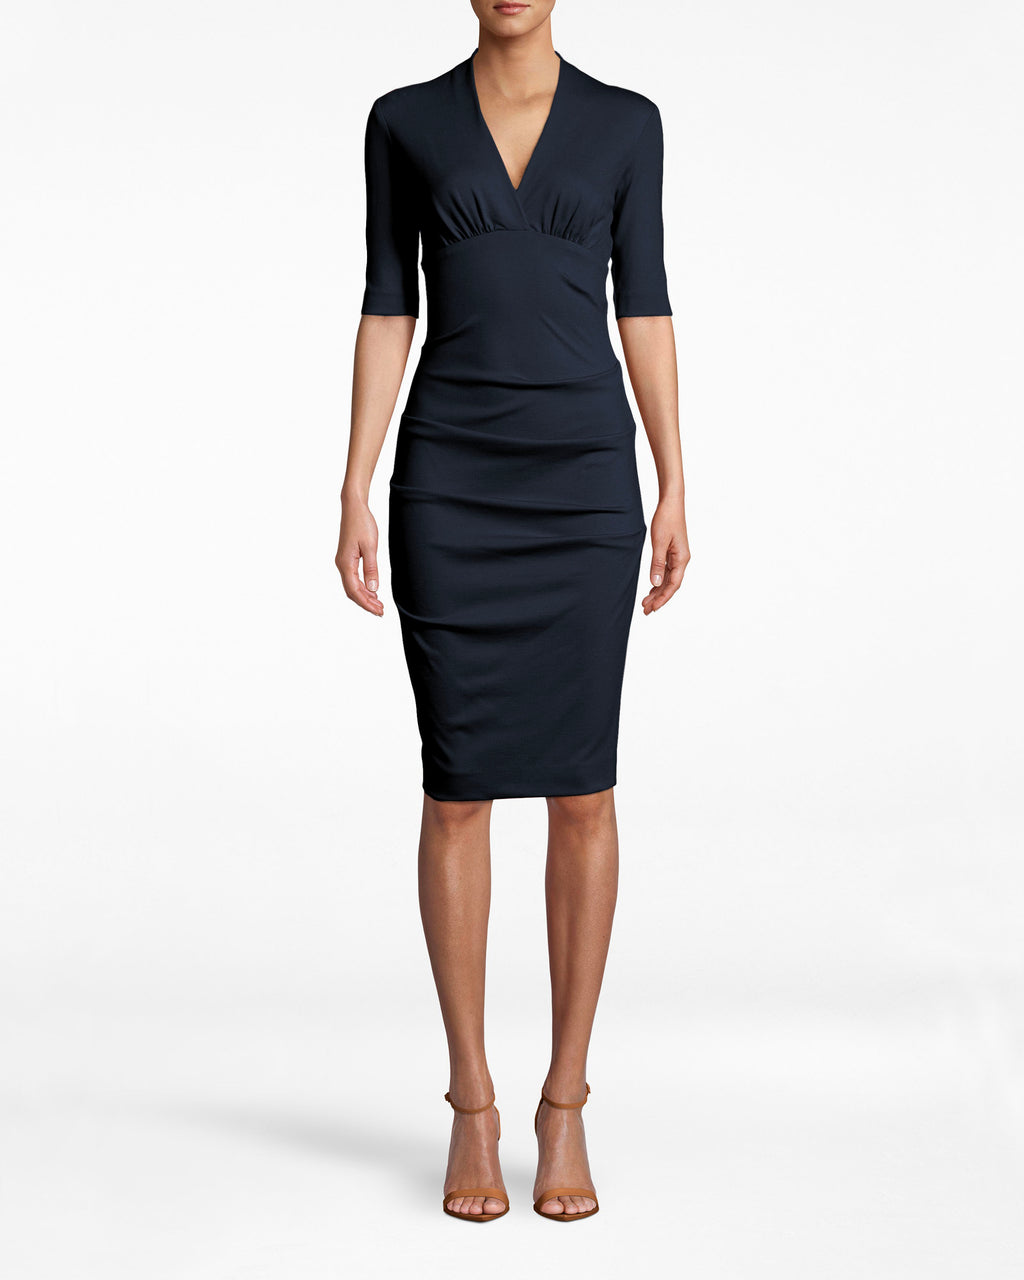 BH10200 - Solid Ponte Dress - dresses - midi - Office upgrade. This 3/4 sleeve dress emphasizes your bodice with its deep v neck and collared neckline. The ruched skirt adds a note of sexy to a staple silhouette. Exposed back zipper for closure.